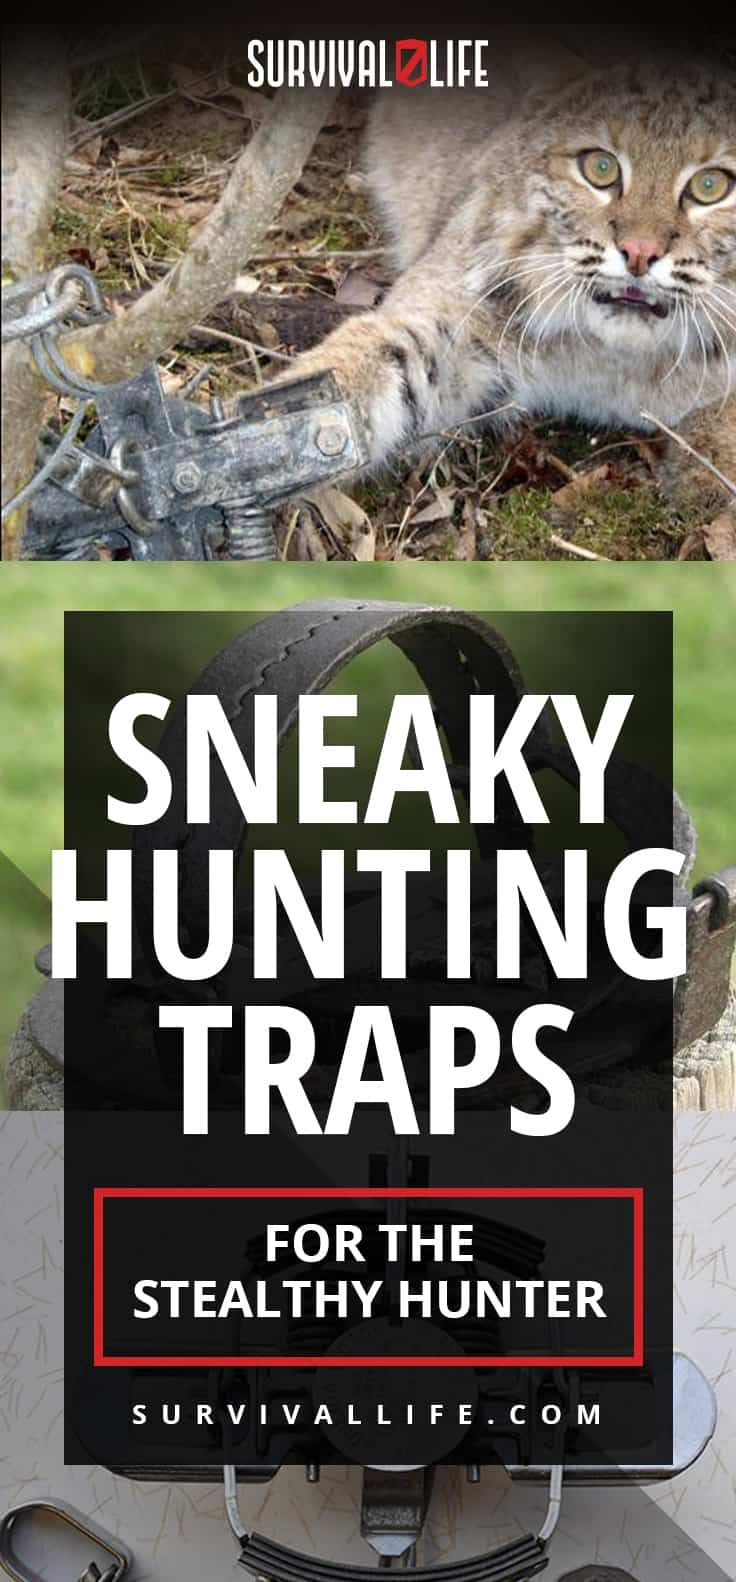 Sneaky Hunting Traps For The Stealthy Hunter